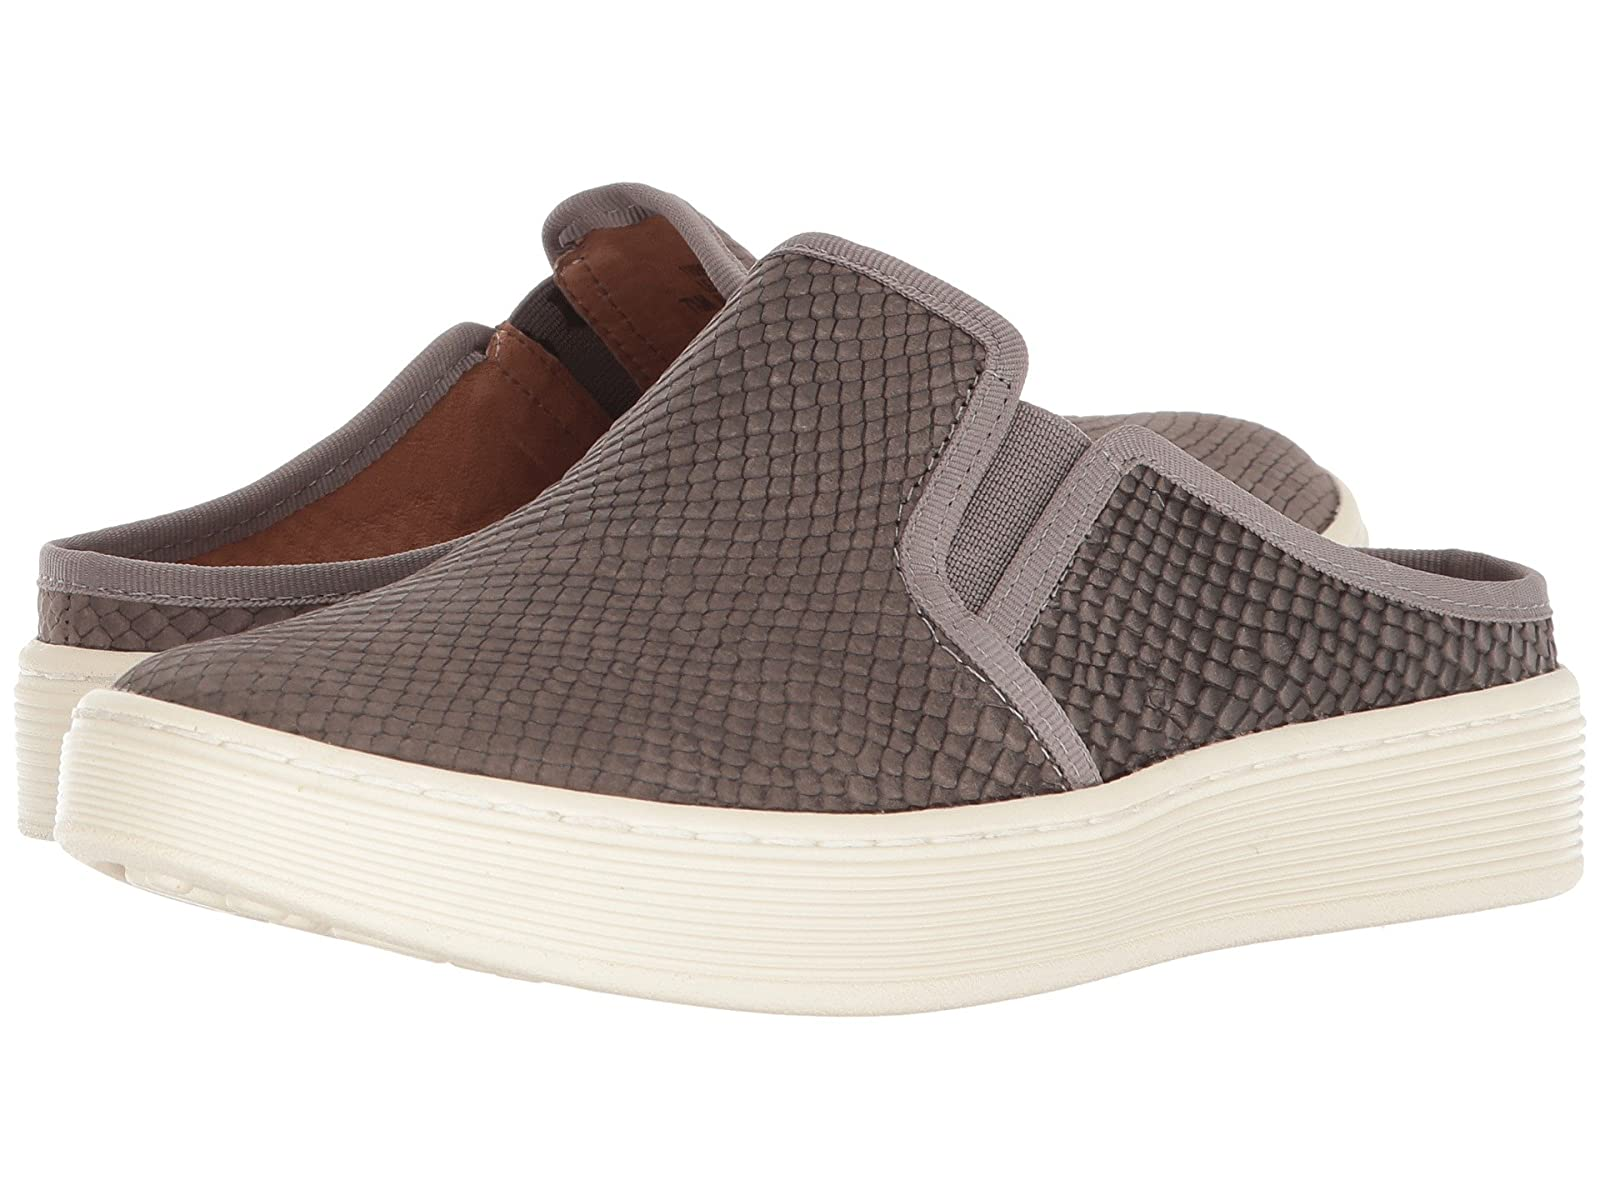 Sofft Somers SlideCheap and distinctive eye-catching shoes